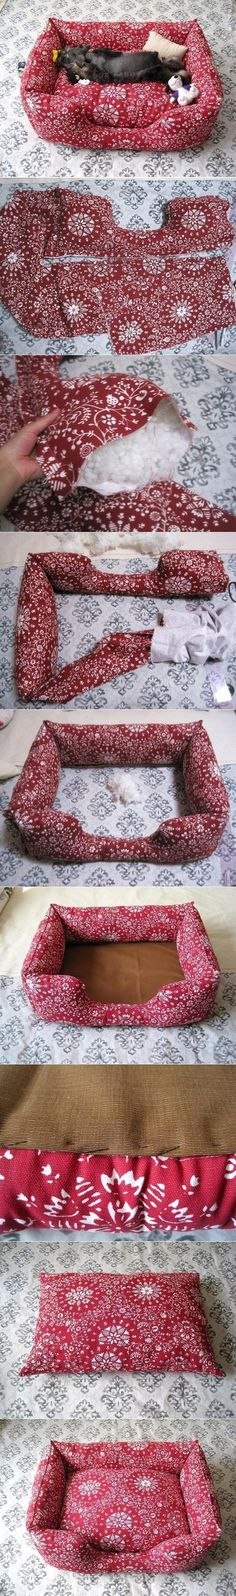 DIY Fabric Pet Sofa Not my fabric choice but this looks like something even THIS non-crafty person could do. Especially nice to make and donate to shelters.